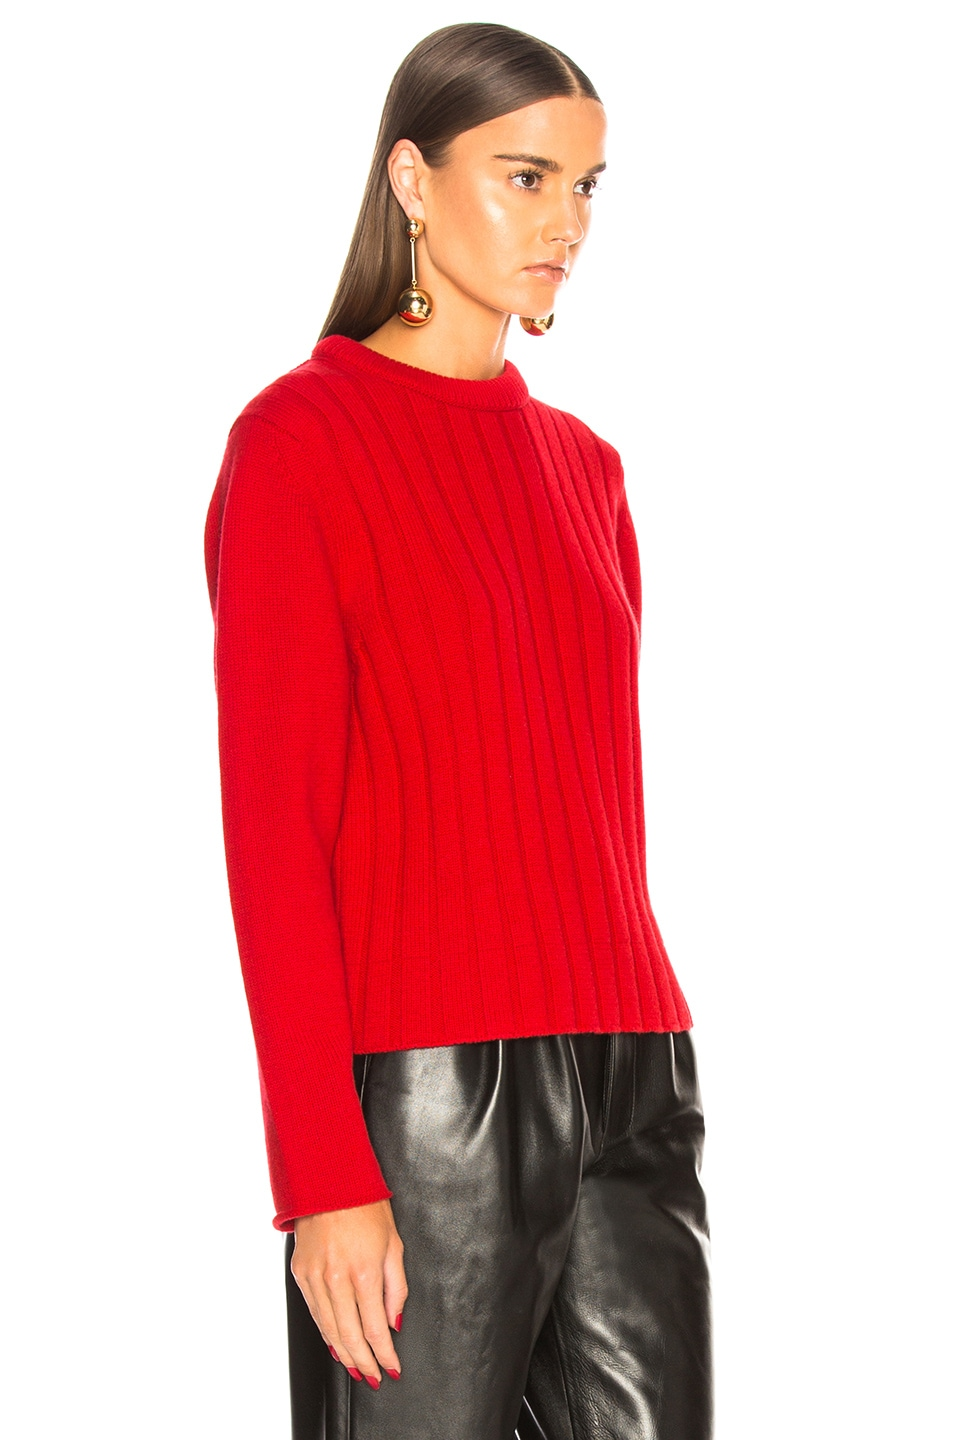 Image 3 of Chloe Iconic Cashmere Crewneck Sweater in Earthy Red